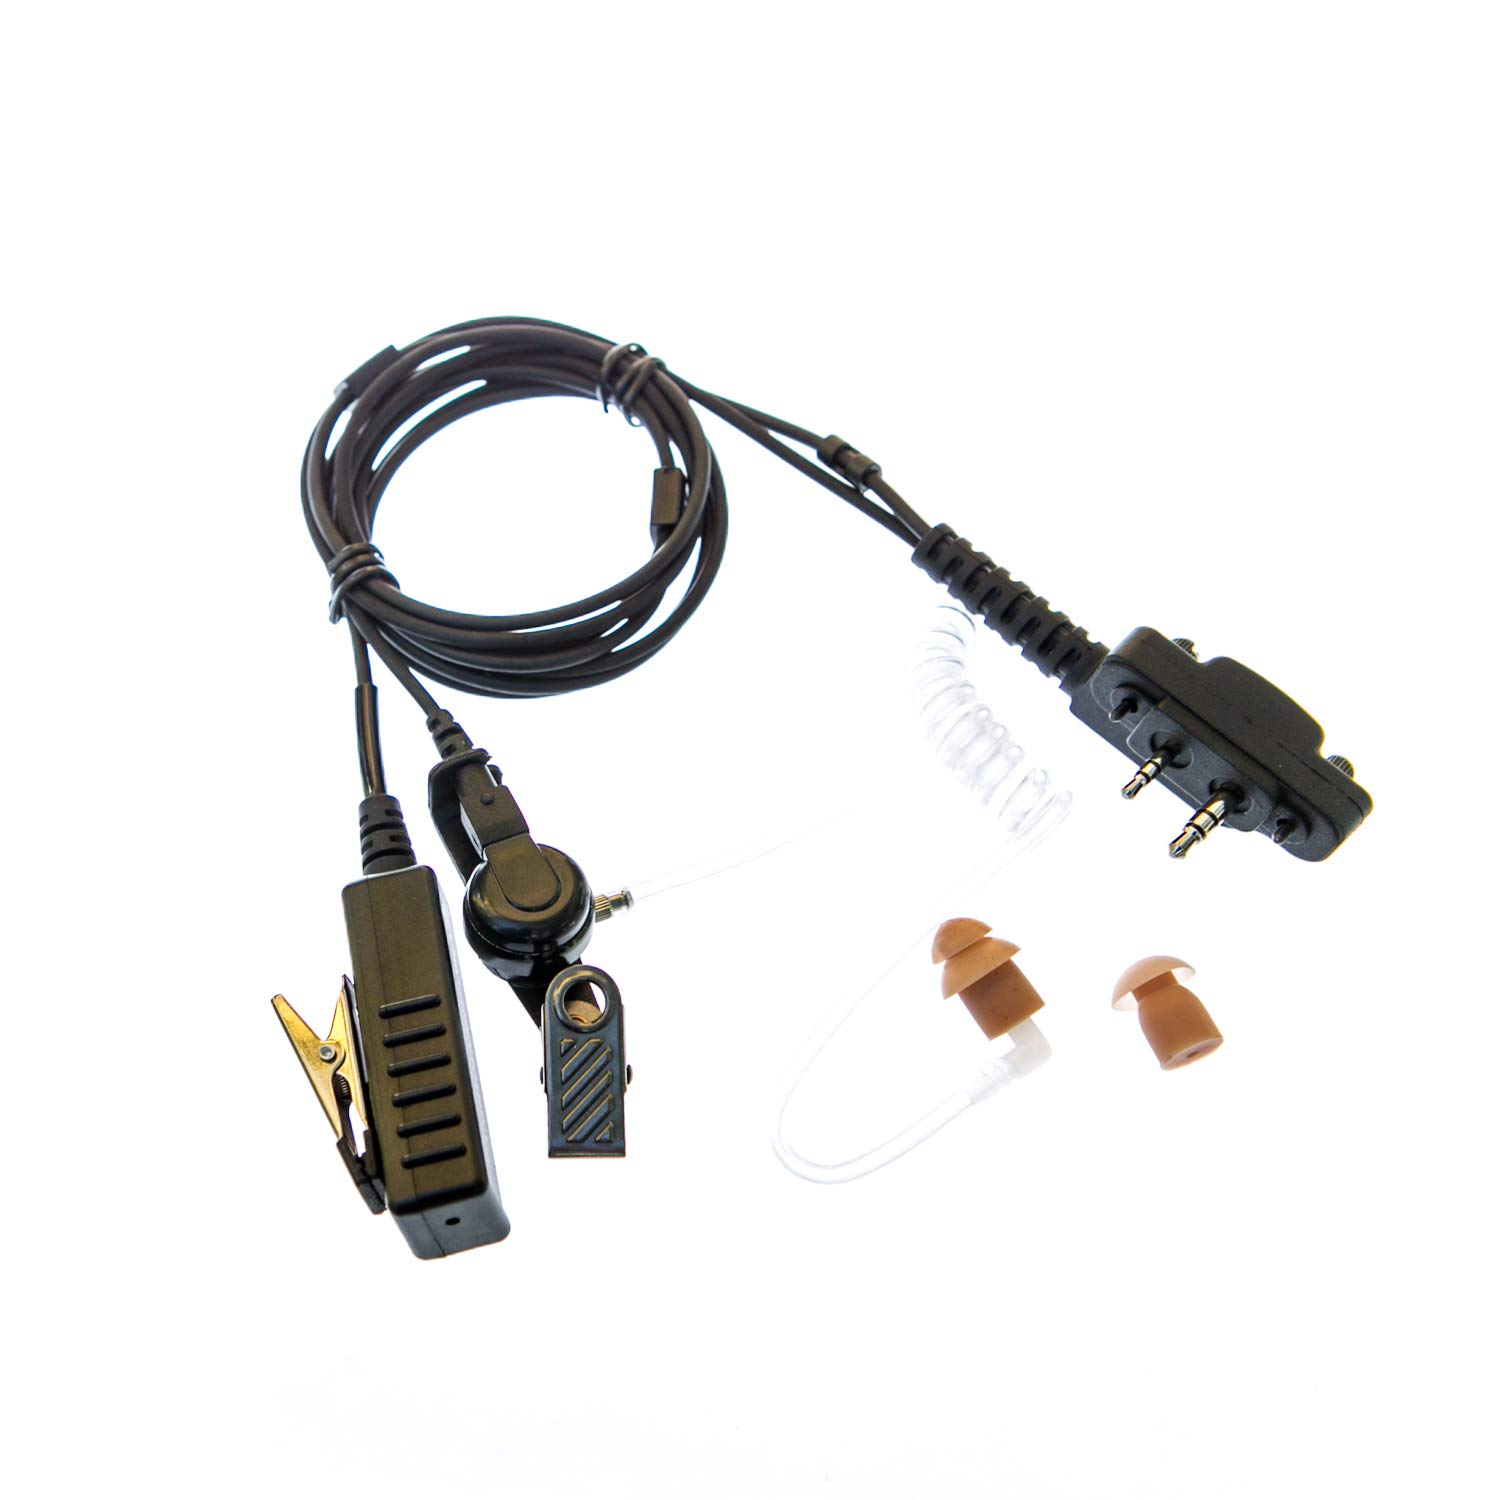 Earpiece Covert with mic for Icom radio (2 pin & 2 screws)